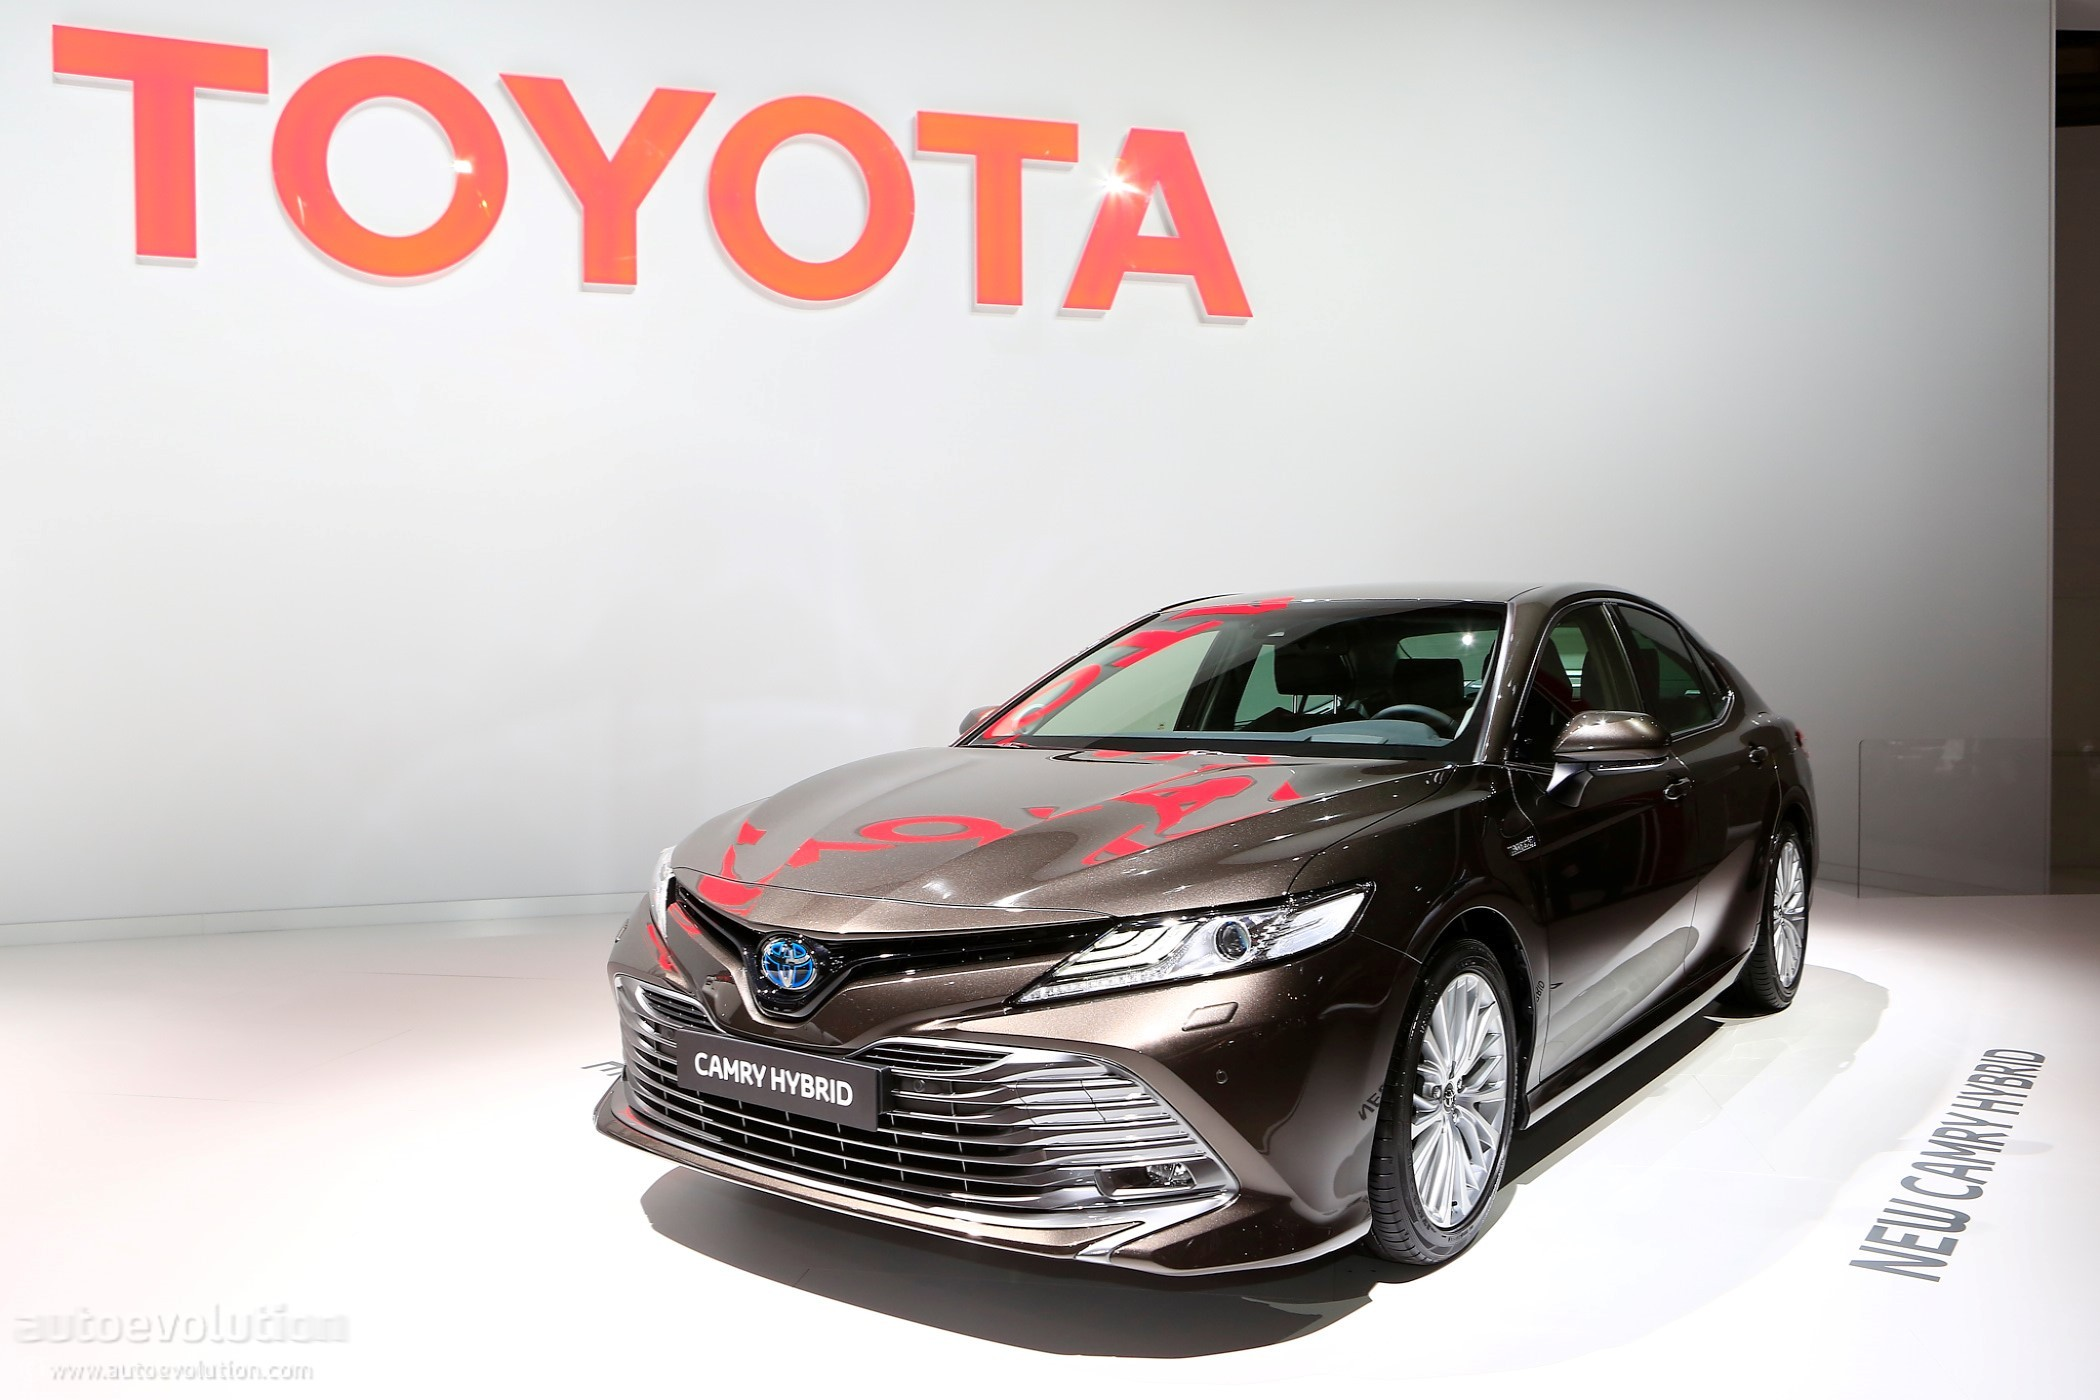 2019 Toyota Camry Shows Up In Paris With Hybrid Powertrain ...